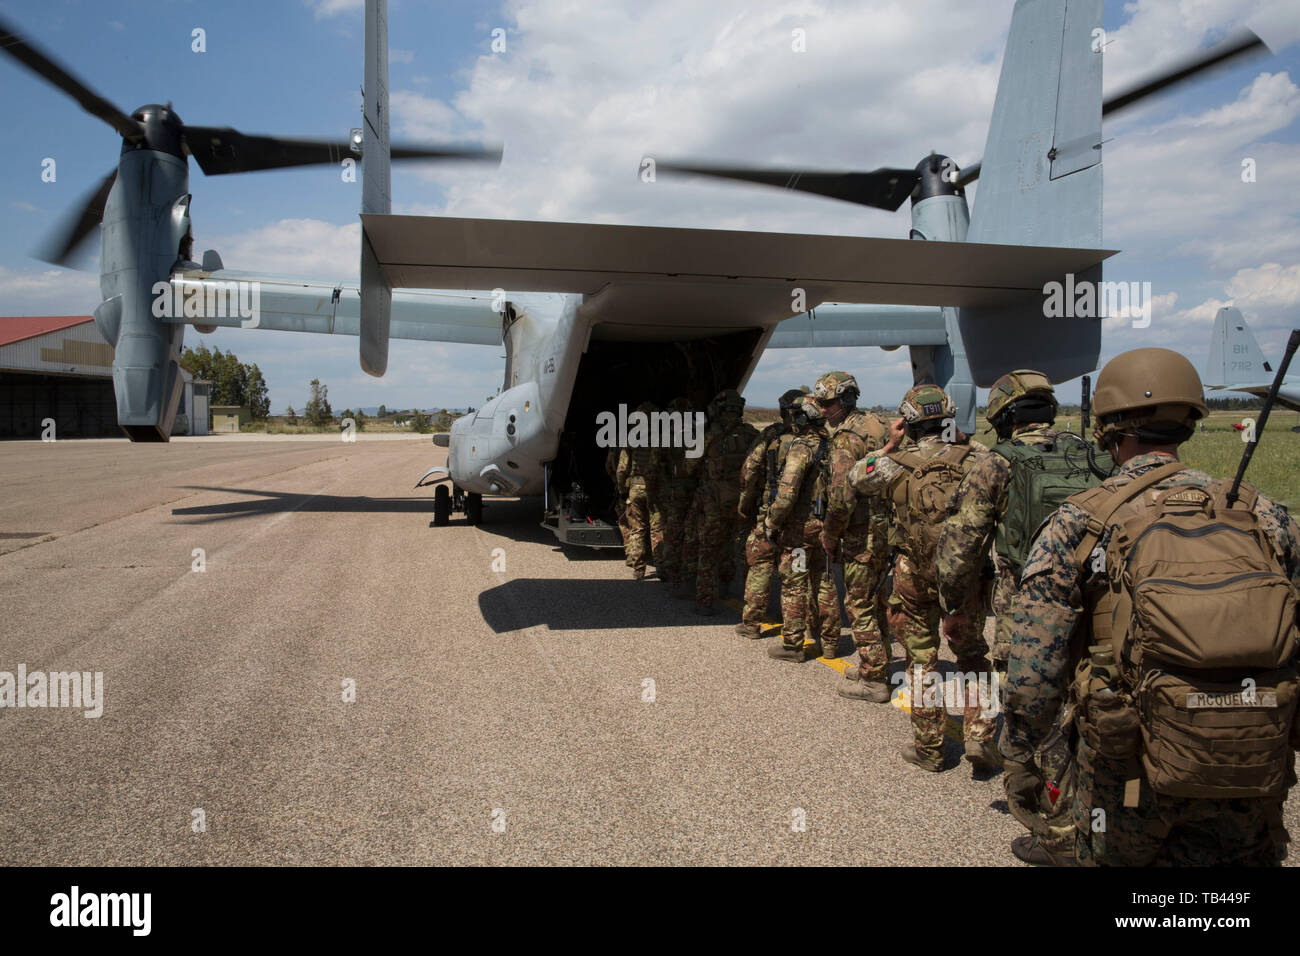 U.S. Marines with Special Purpose Marine Air-Ground Task Force-Crisis Response-Africa 19.2, Marine Forces Europe and Africa, and members of the Italian military board a U.S. Marine Corps MV-22B Osprey for a raid rehearsal during exercise Joint Stars 2019 at Perdas range in Sardinia, Italy, May 24, 2019. Joint Stars 2019 is a bilateral training exercise between the Italian Armed Forces and U.S. Marines. SPMAGTF-CR-AF is deployed to conduct crisis-response and theater-security operations in Africa and promote regional stability by conducting military-to-military training exercises throughout Eur Stock Photo